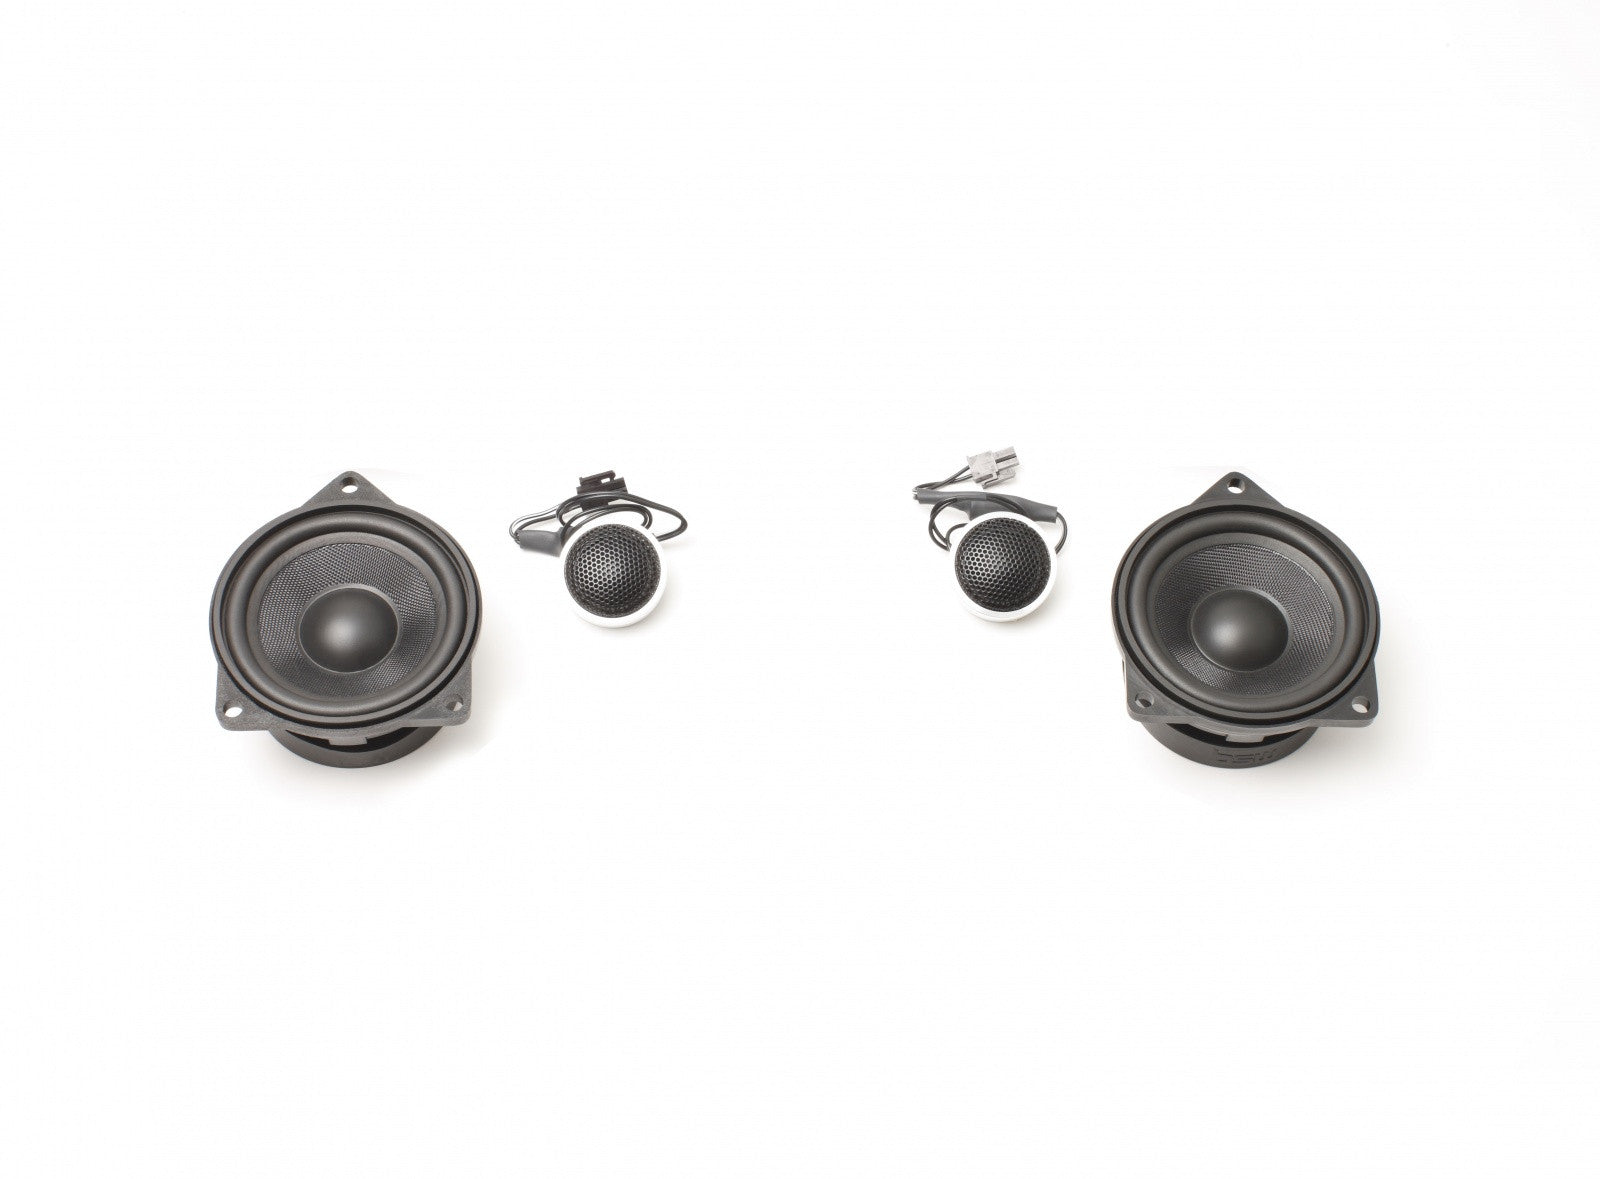 Front Sound Stage for R55/R56/R57/R58/R59 Mini Cooper Harman Kardon